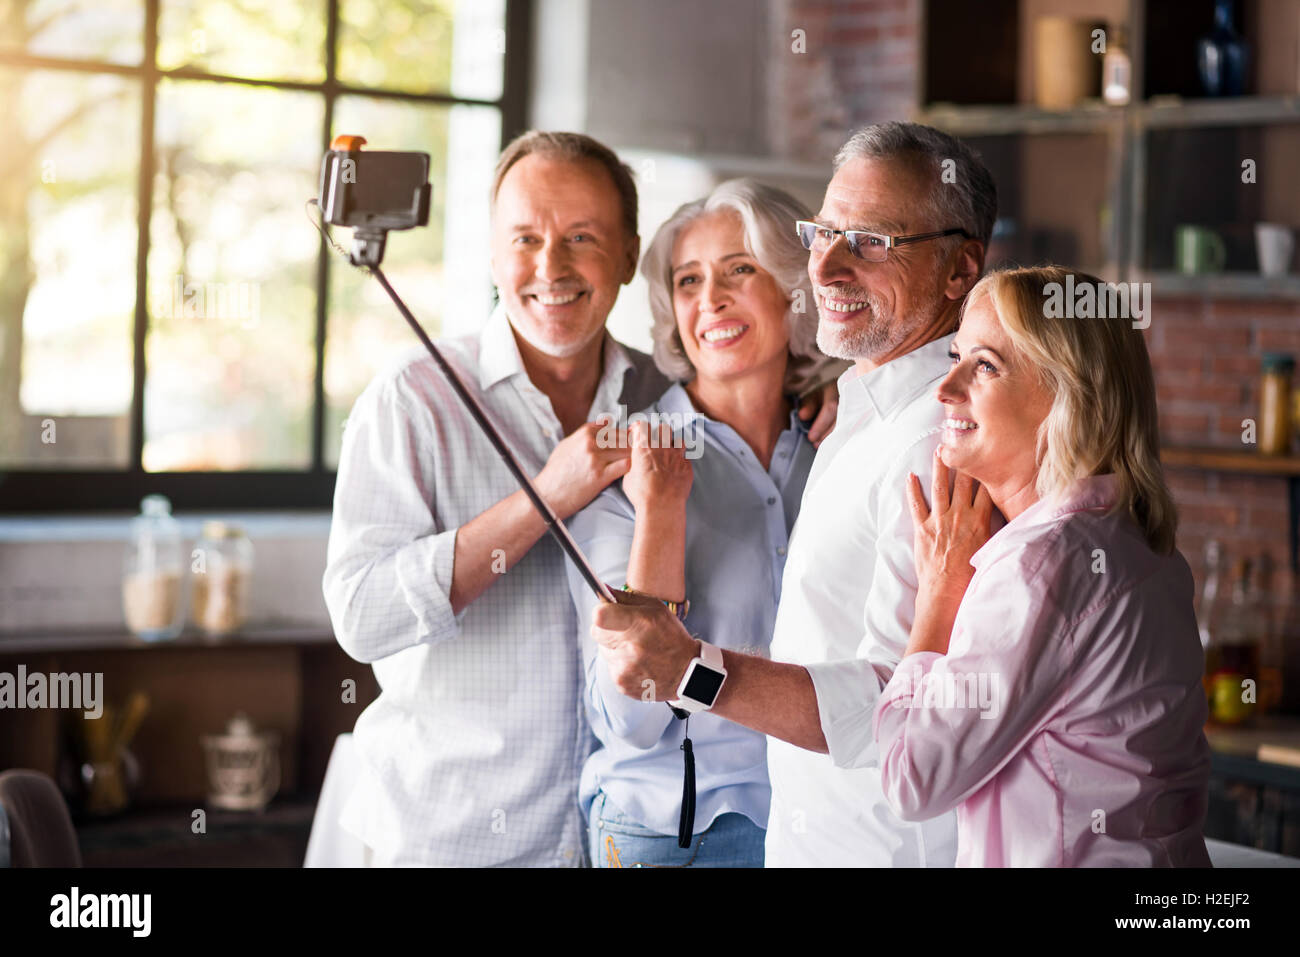 Two elderly couples taking photo in the kitchen - Stock Image